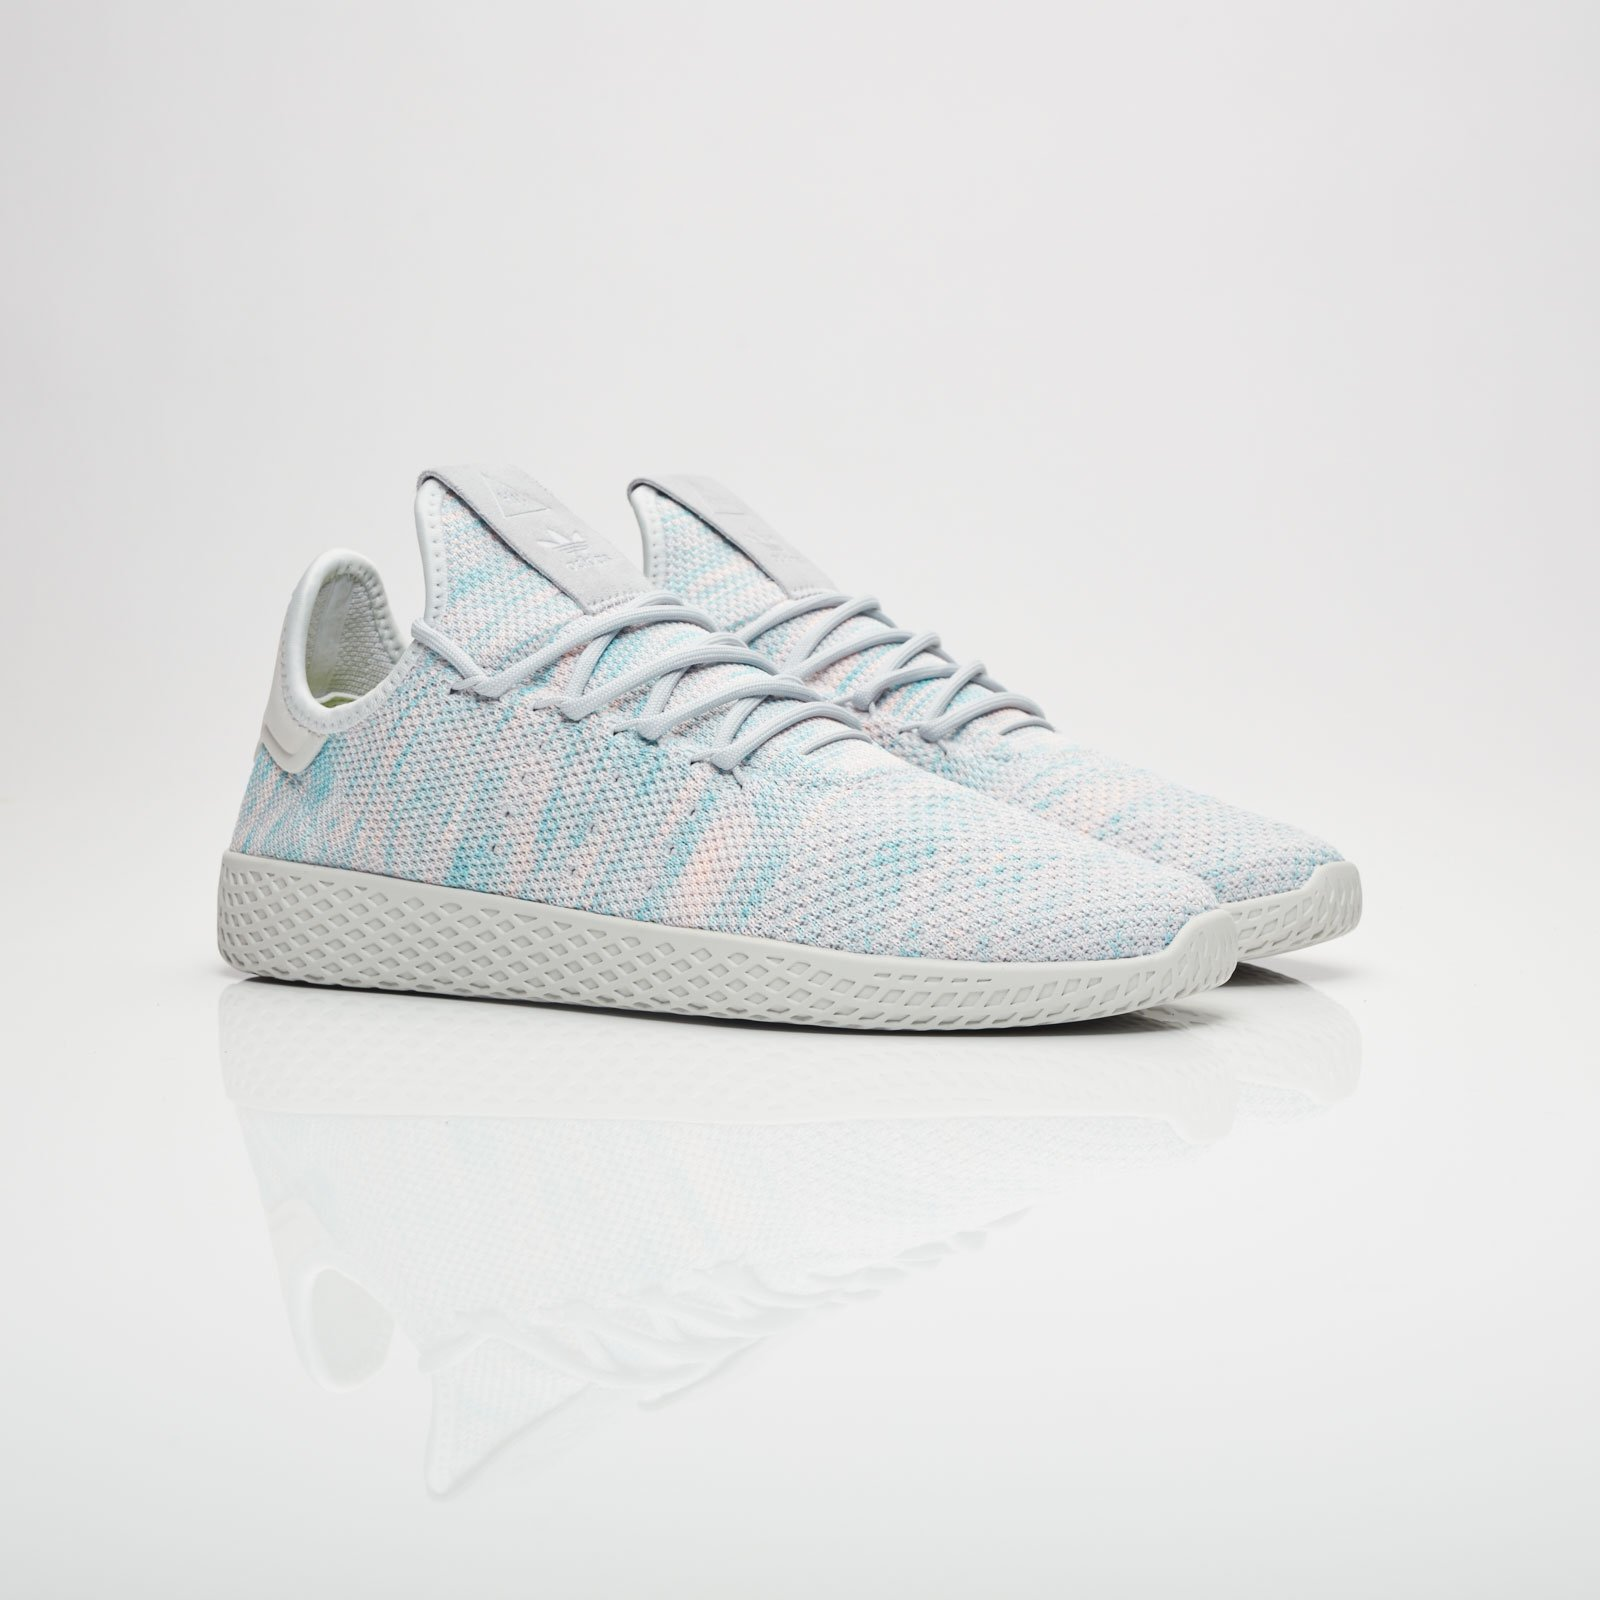 3e92a5668 adidas Pharrell Williams Tennis HU - By2671 - Sneakersnstuff ...